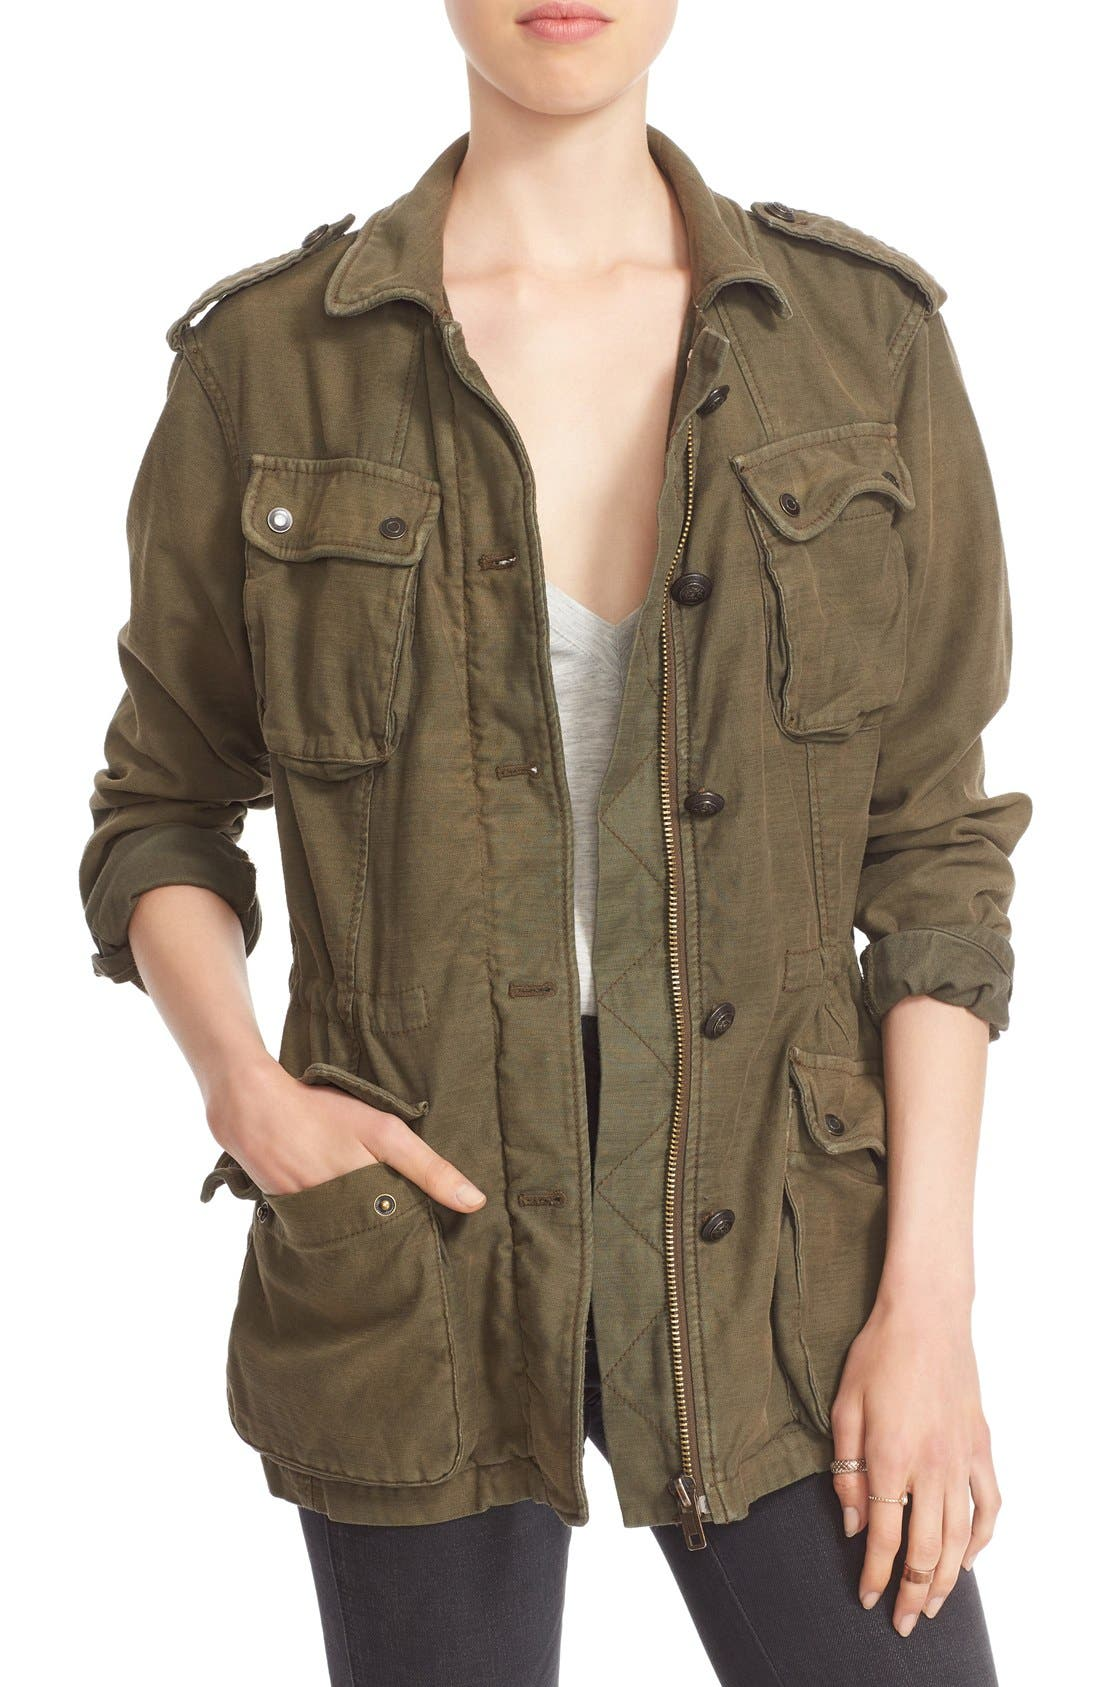 FREE PEOPLE, 'Not Your Brother's' Utility Jacket, Main thumbnail 1, color, 400